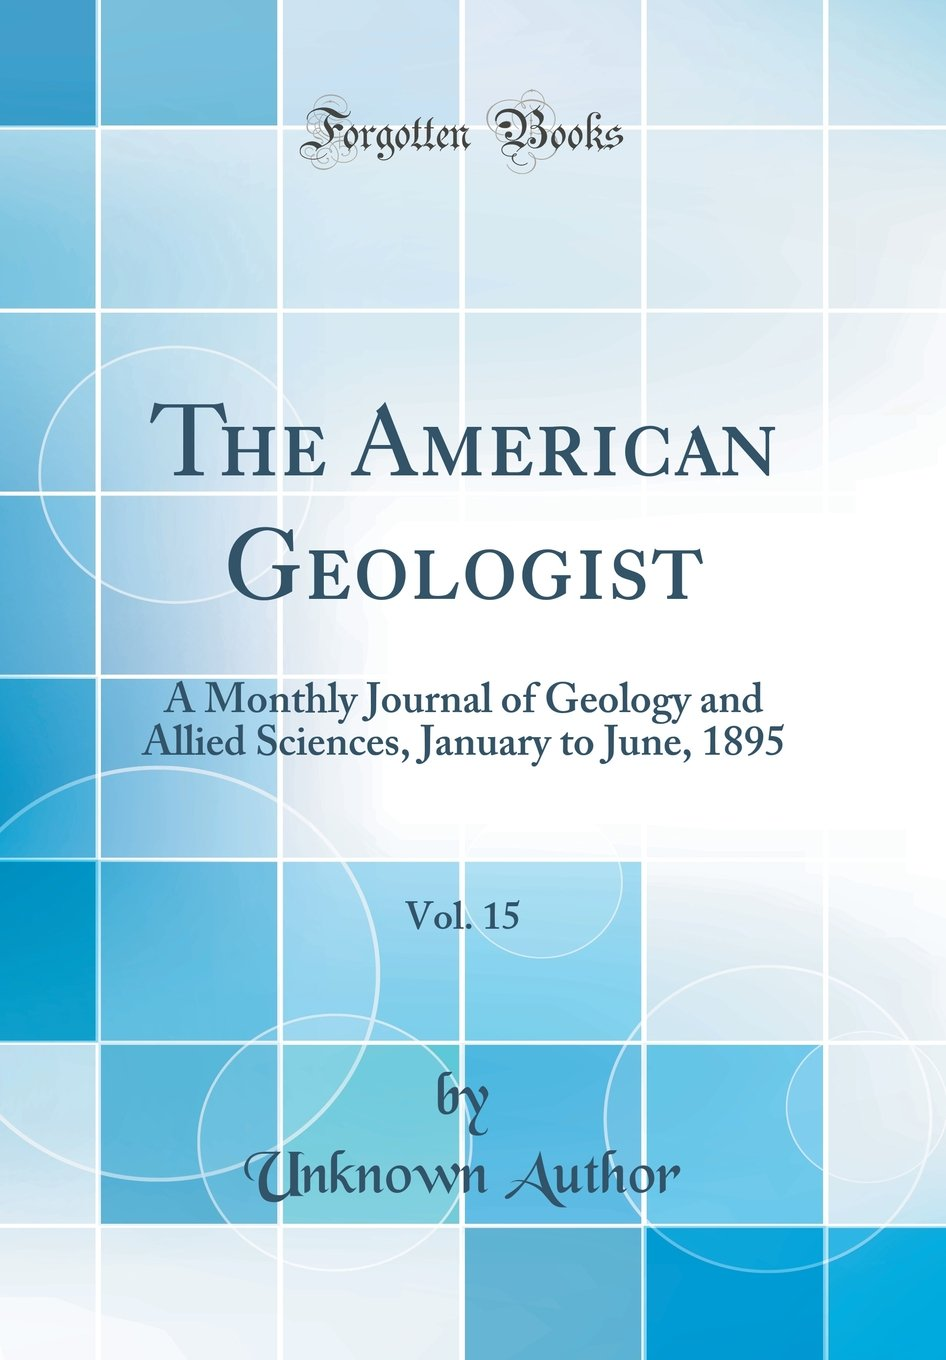 Download The American Geologist, Vol. 15: A Monthly Journal of Geology and Allied Sciences, January to June, 1895 (Classic Reprint) ebook